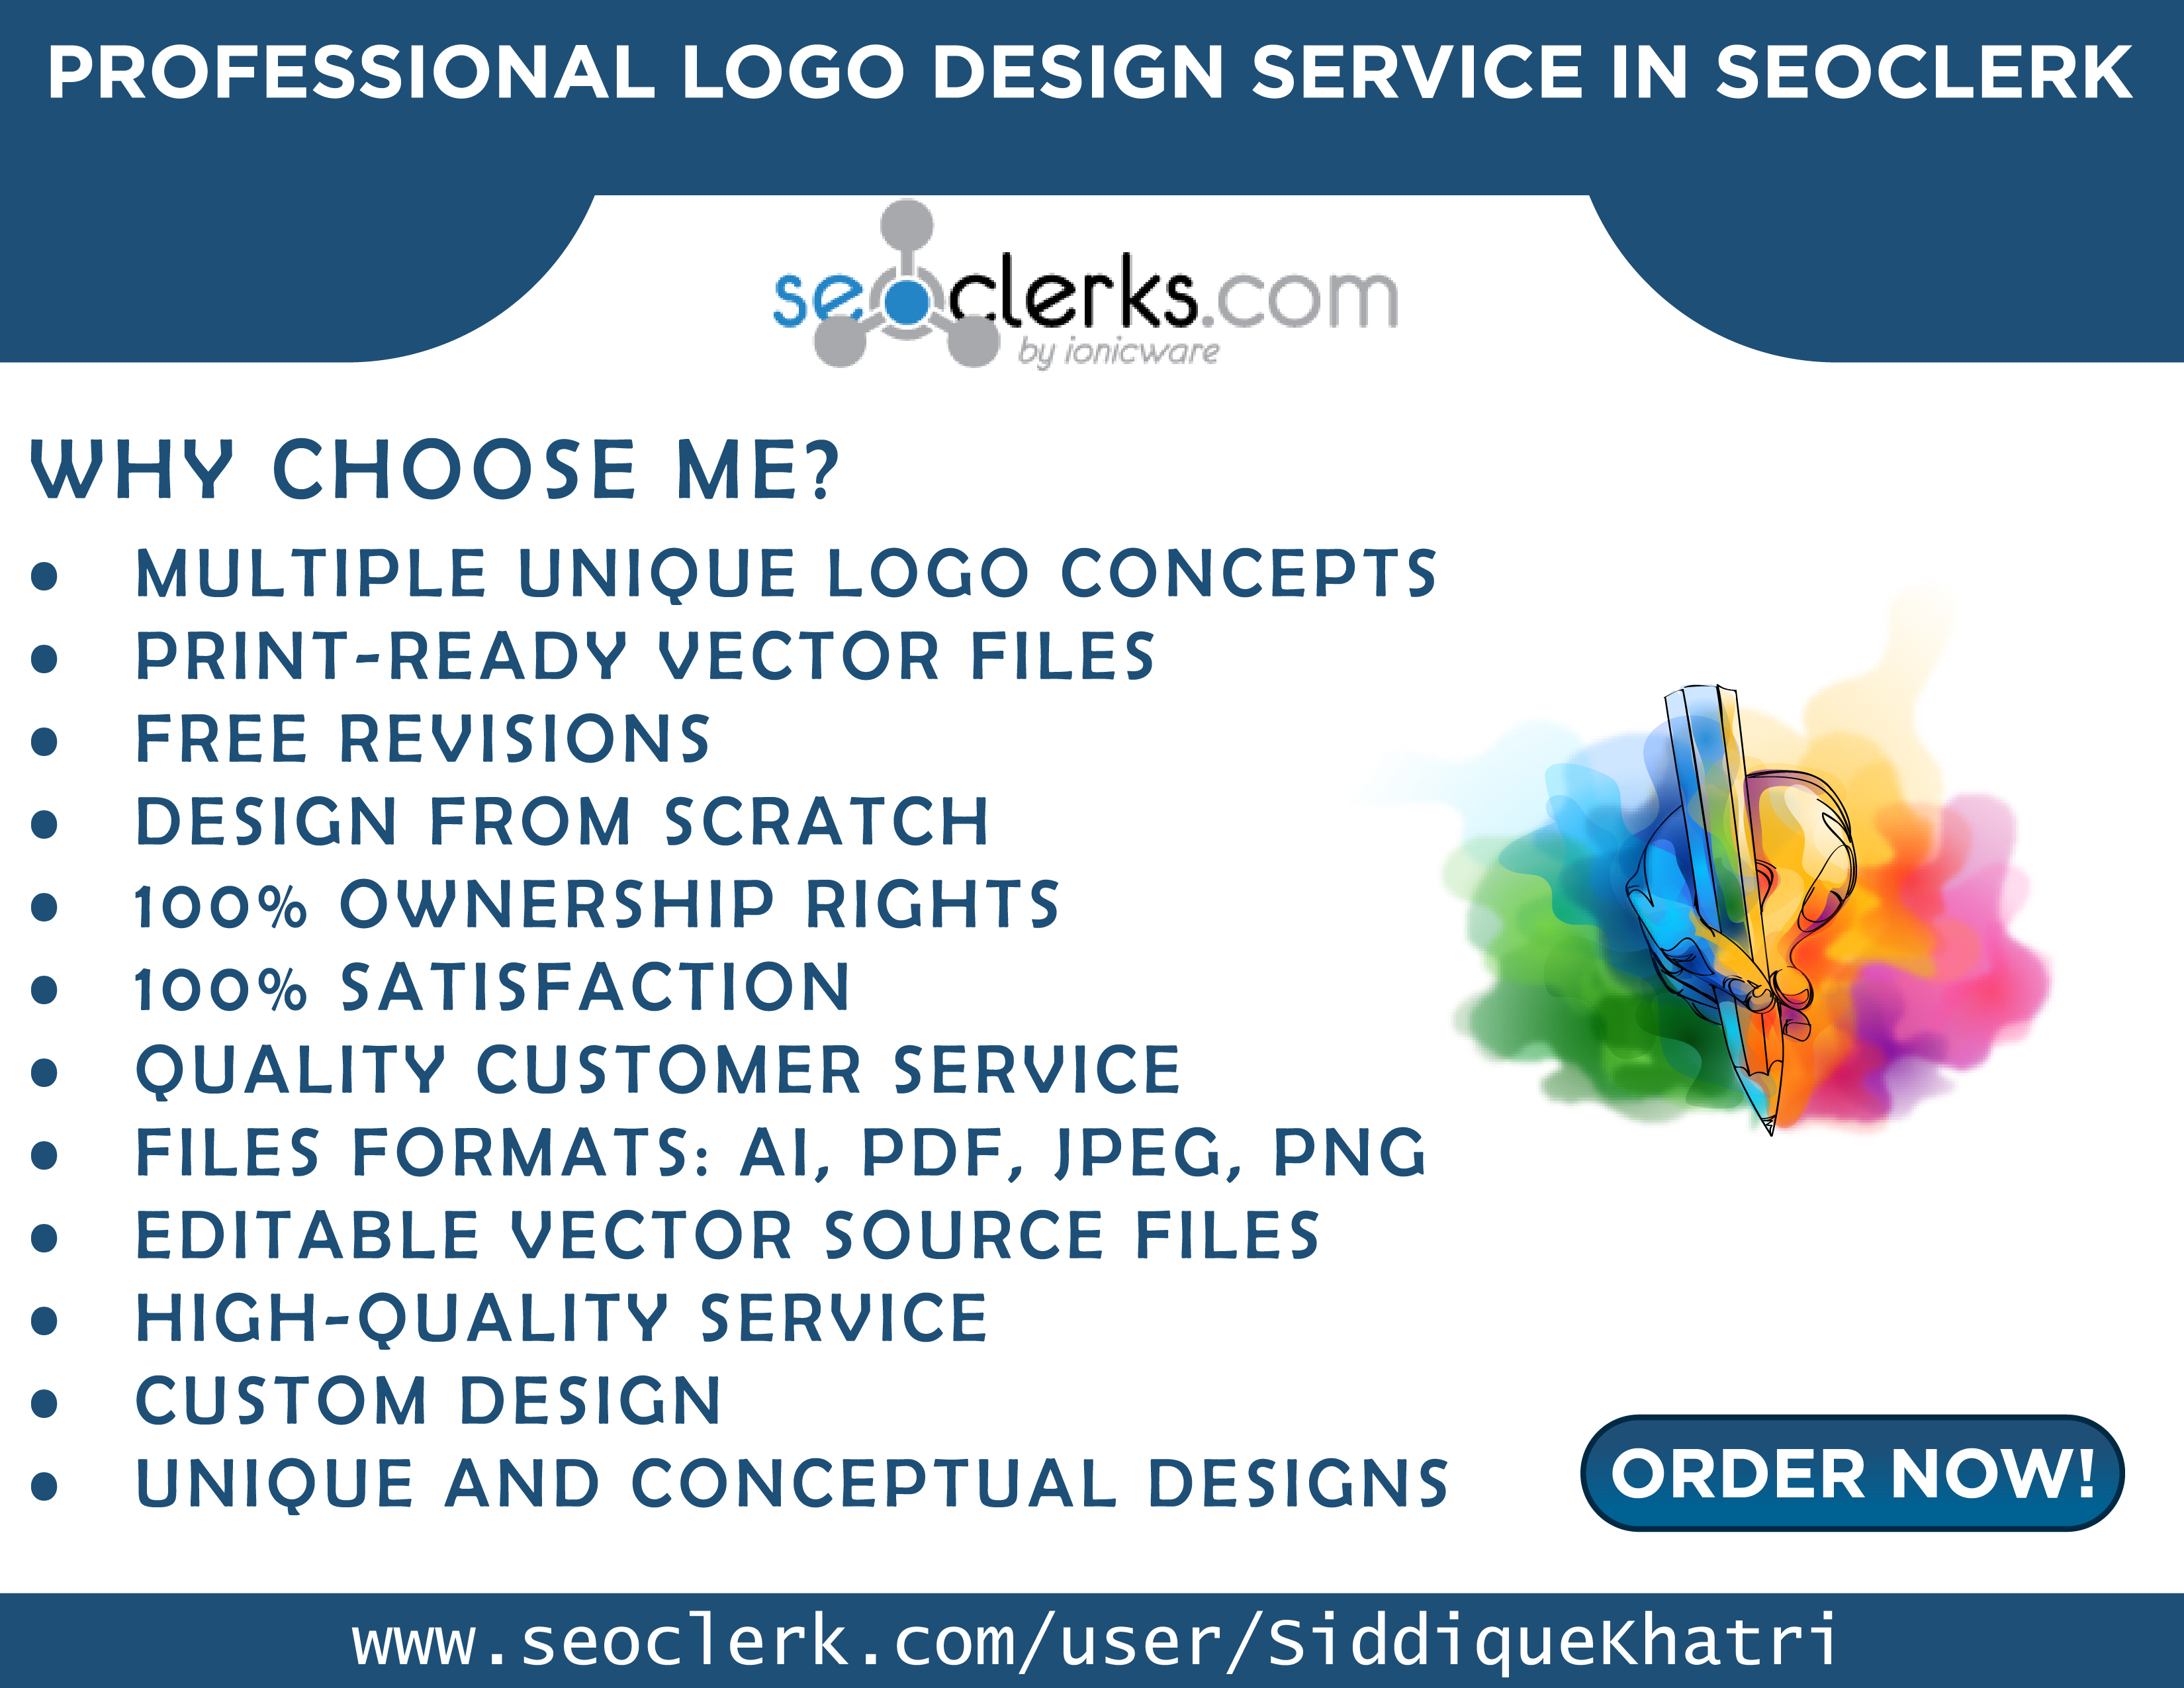 I will be your creative logo designer